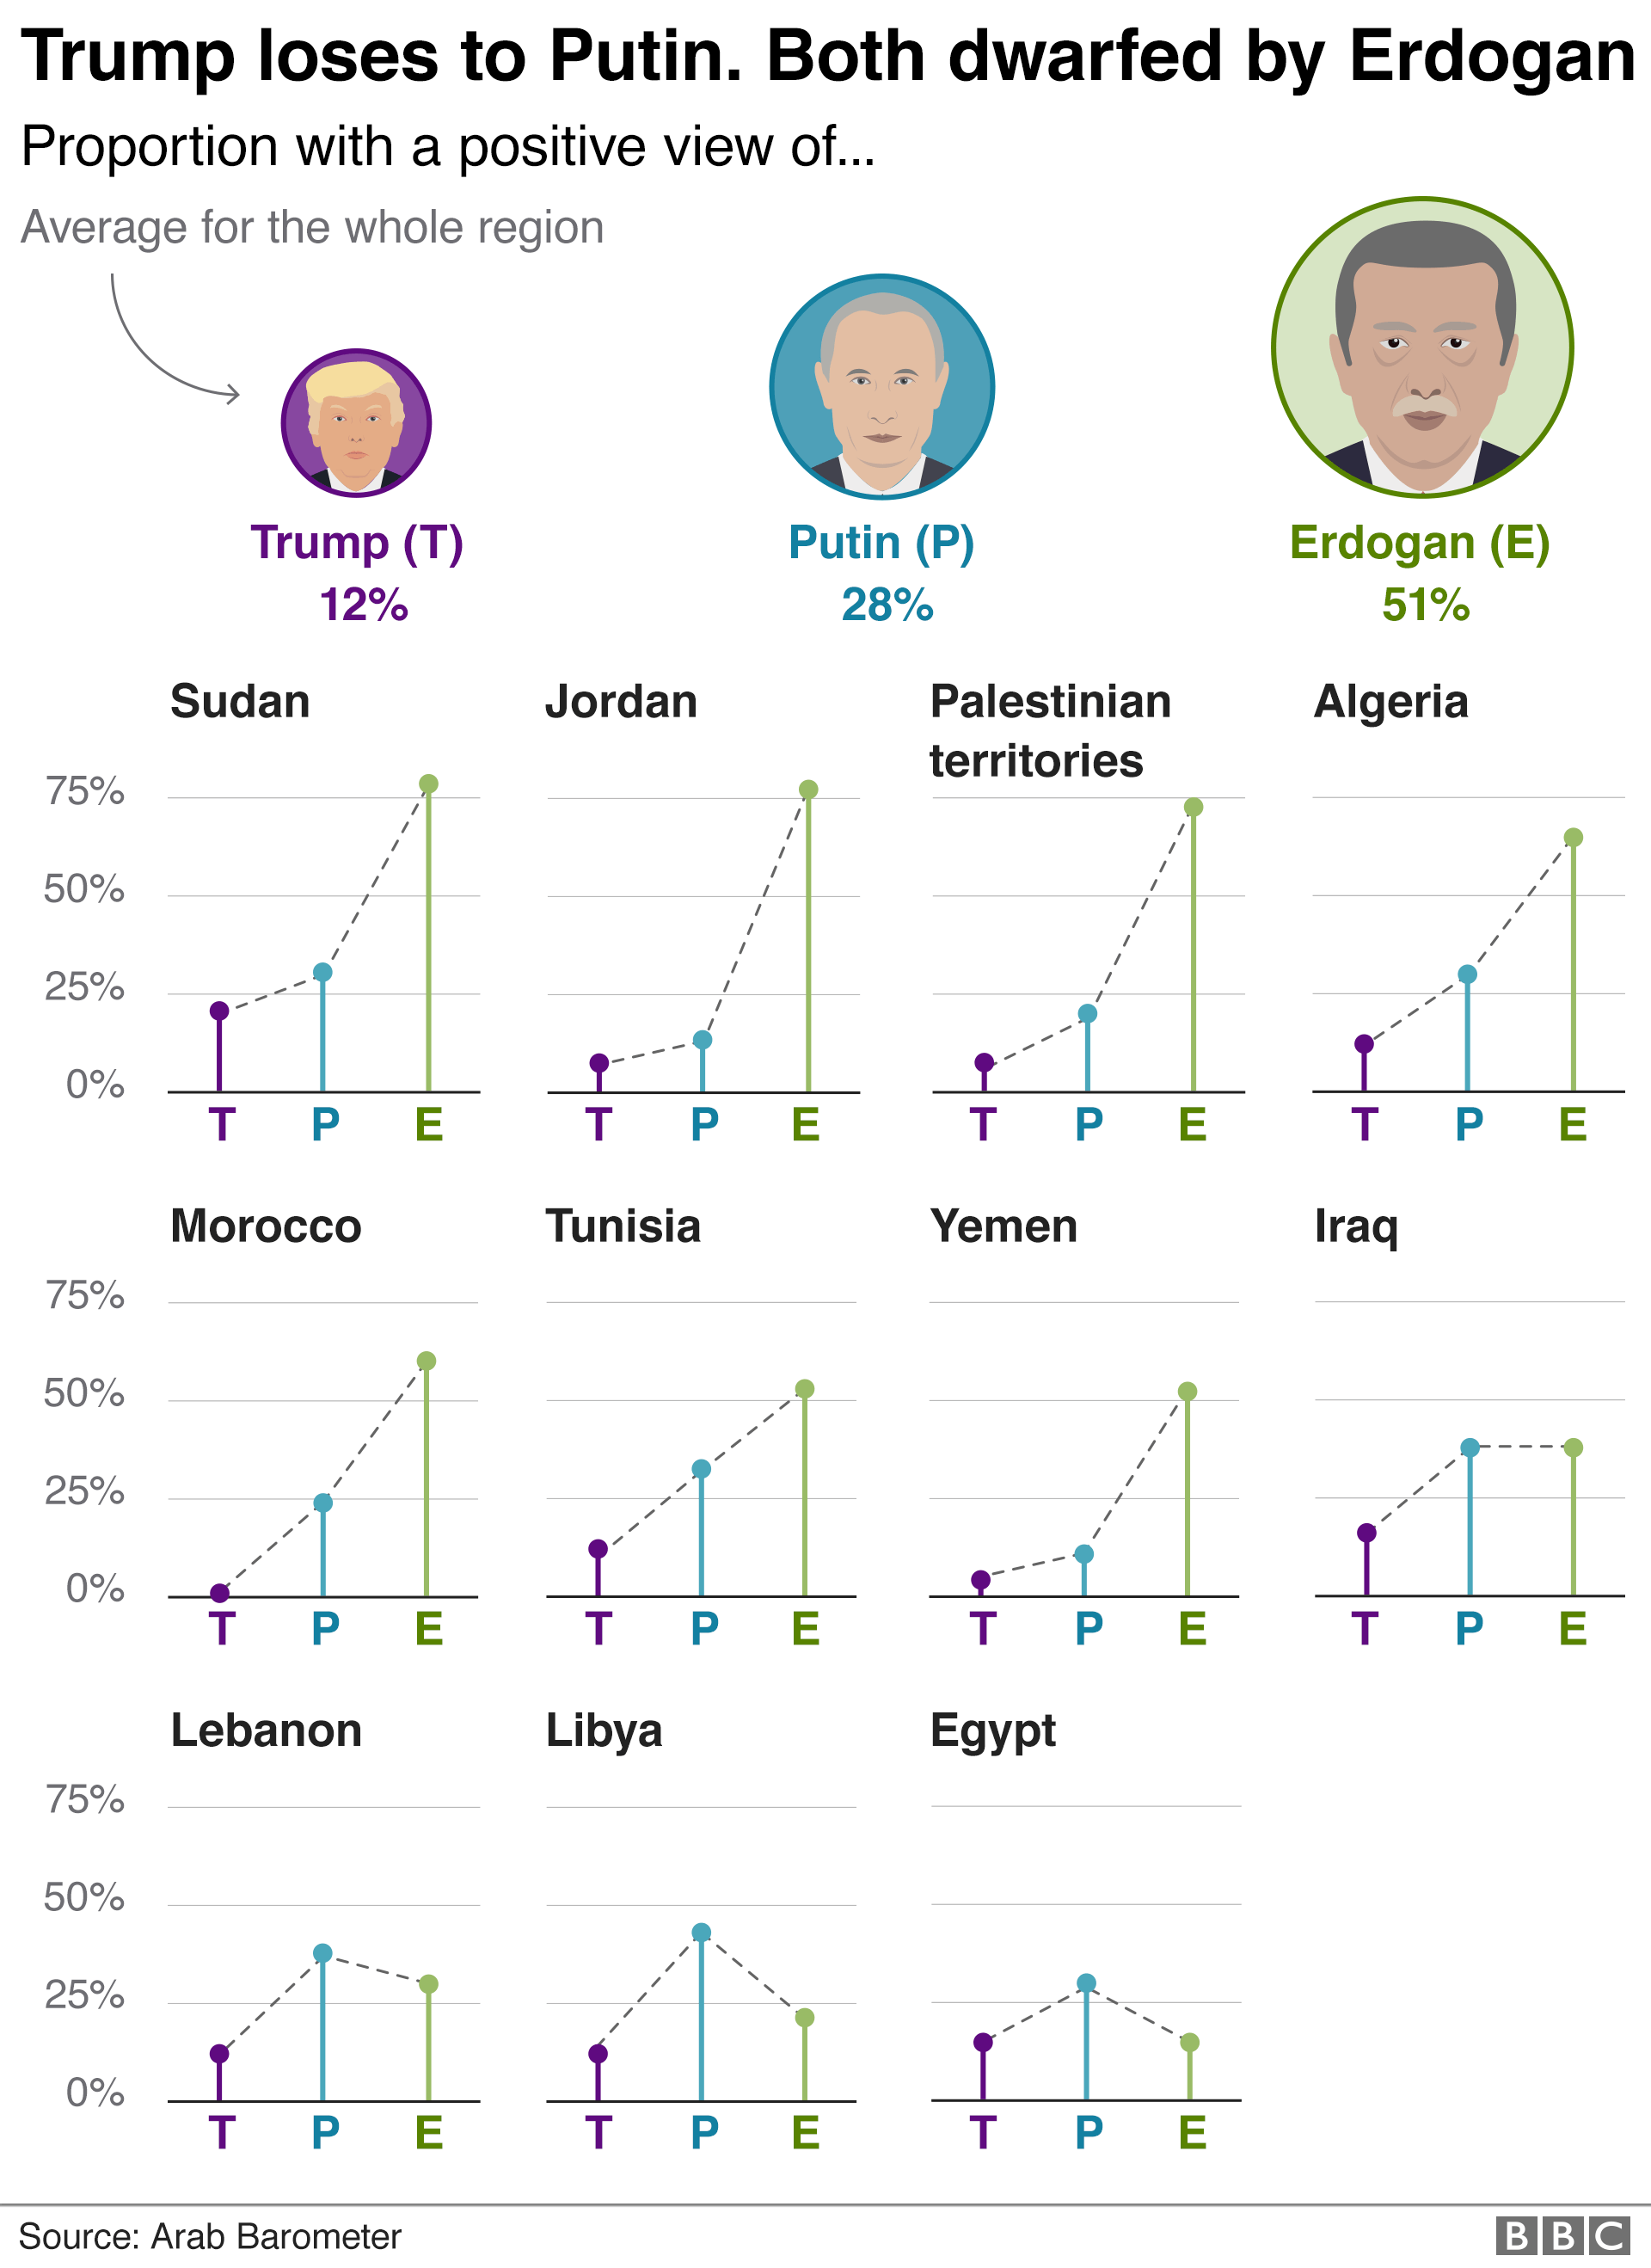 Chart showing that Erdogan is more popular than Trump and Putin in the region